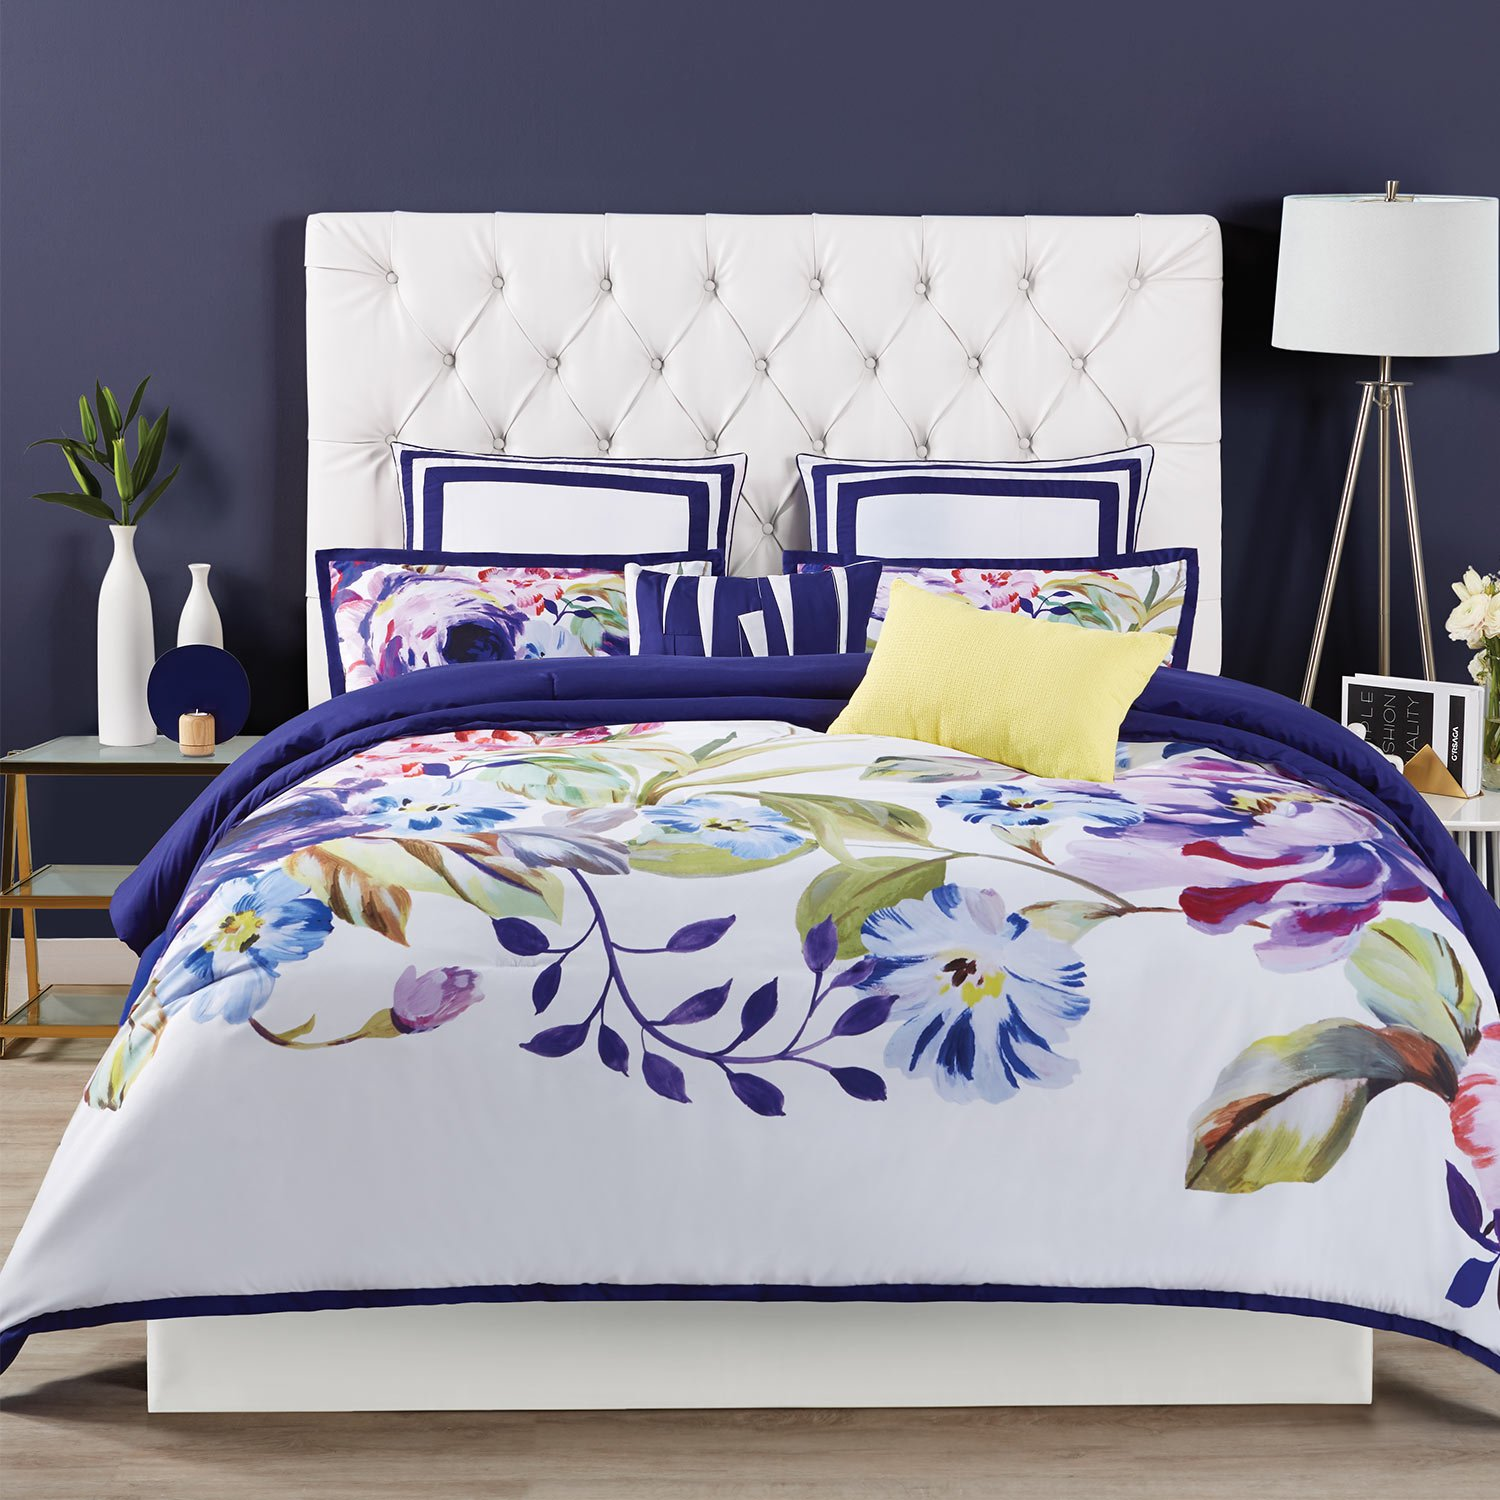 Christian Siriano Comforter Set, King, Garden Bloom by Christian Siriano